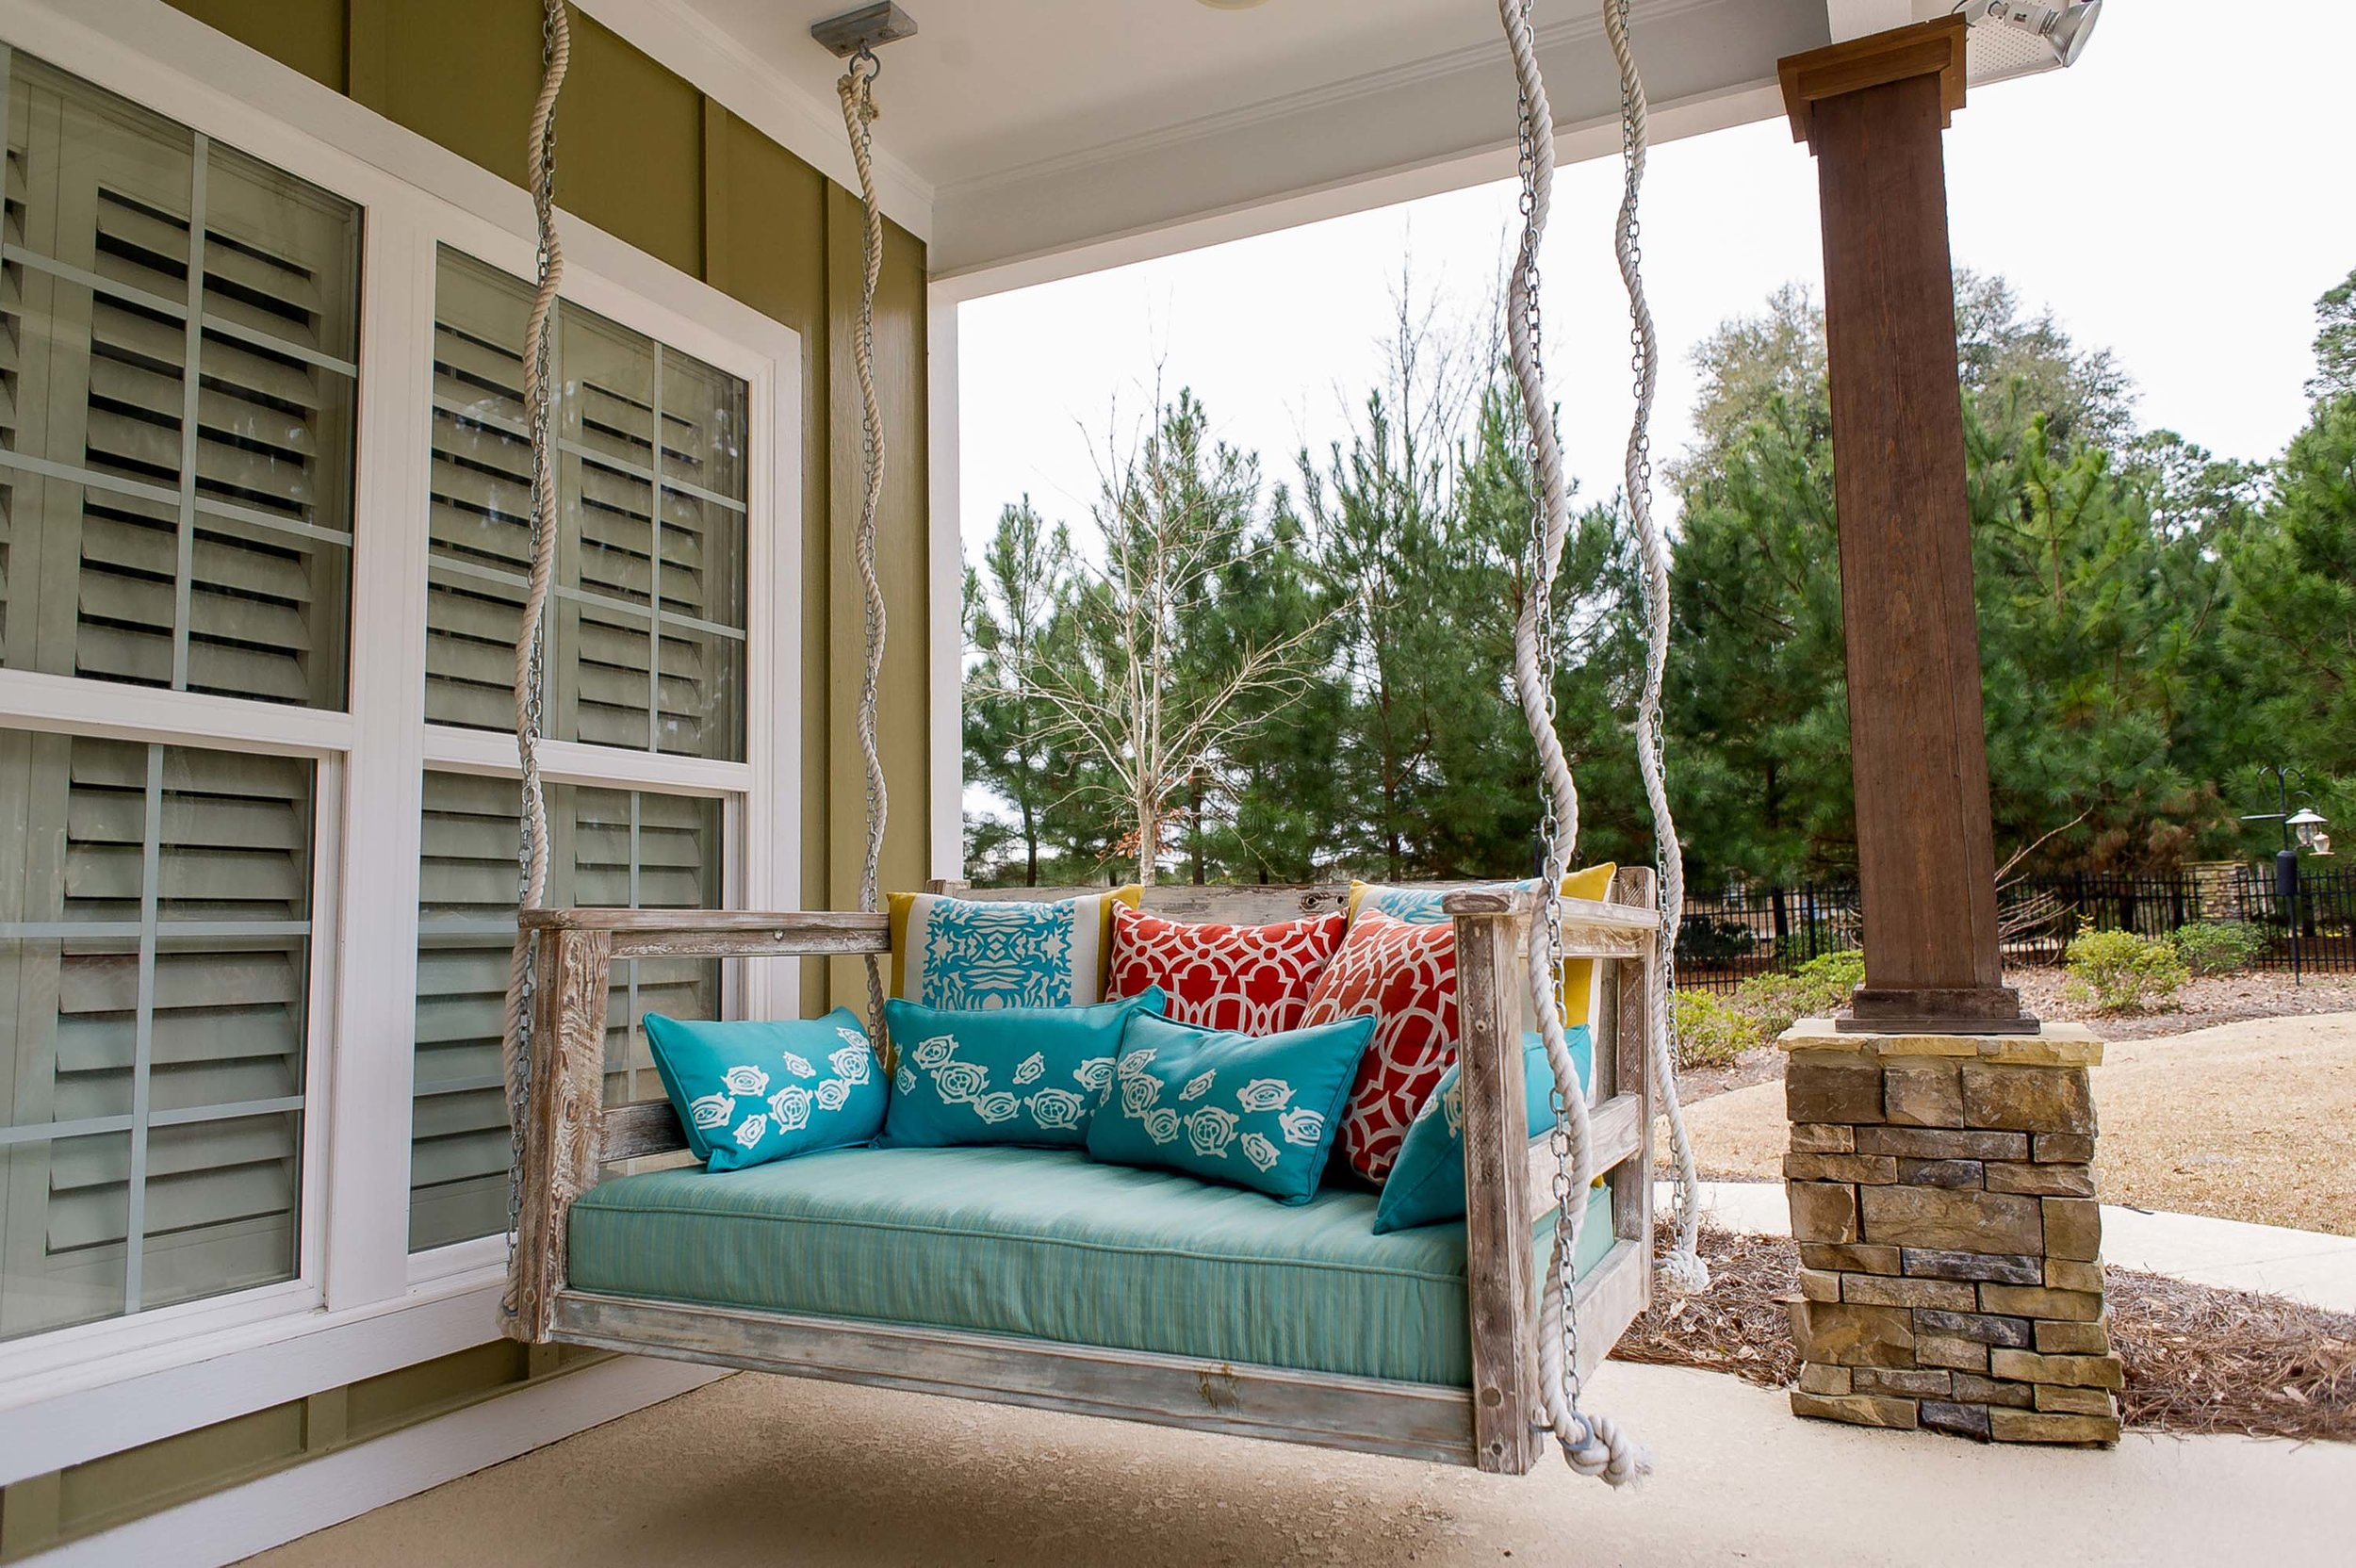 Custom Bed Swing with Outdoor Pillows